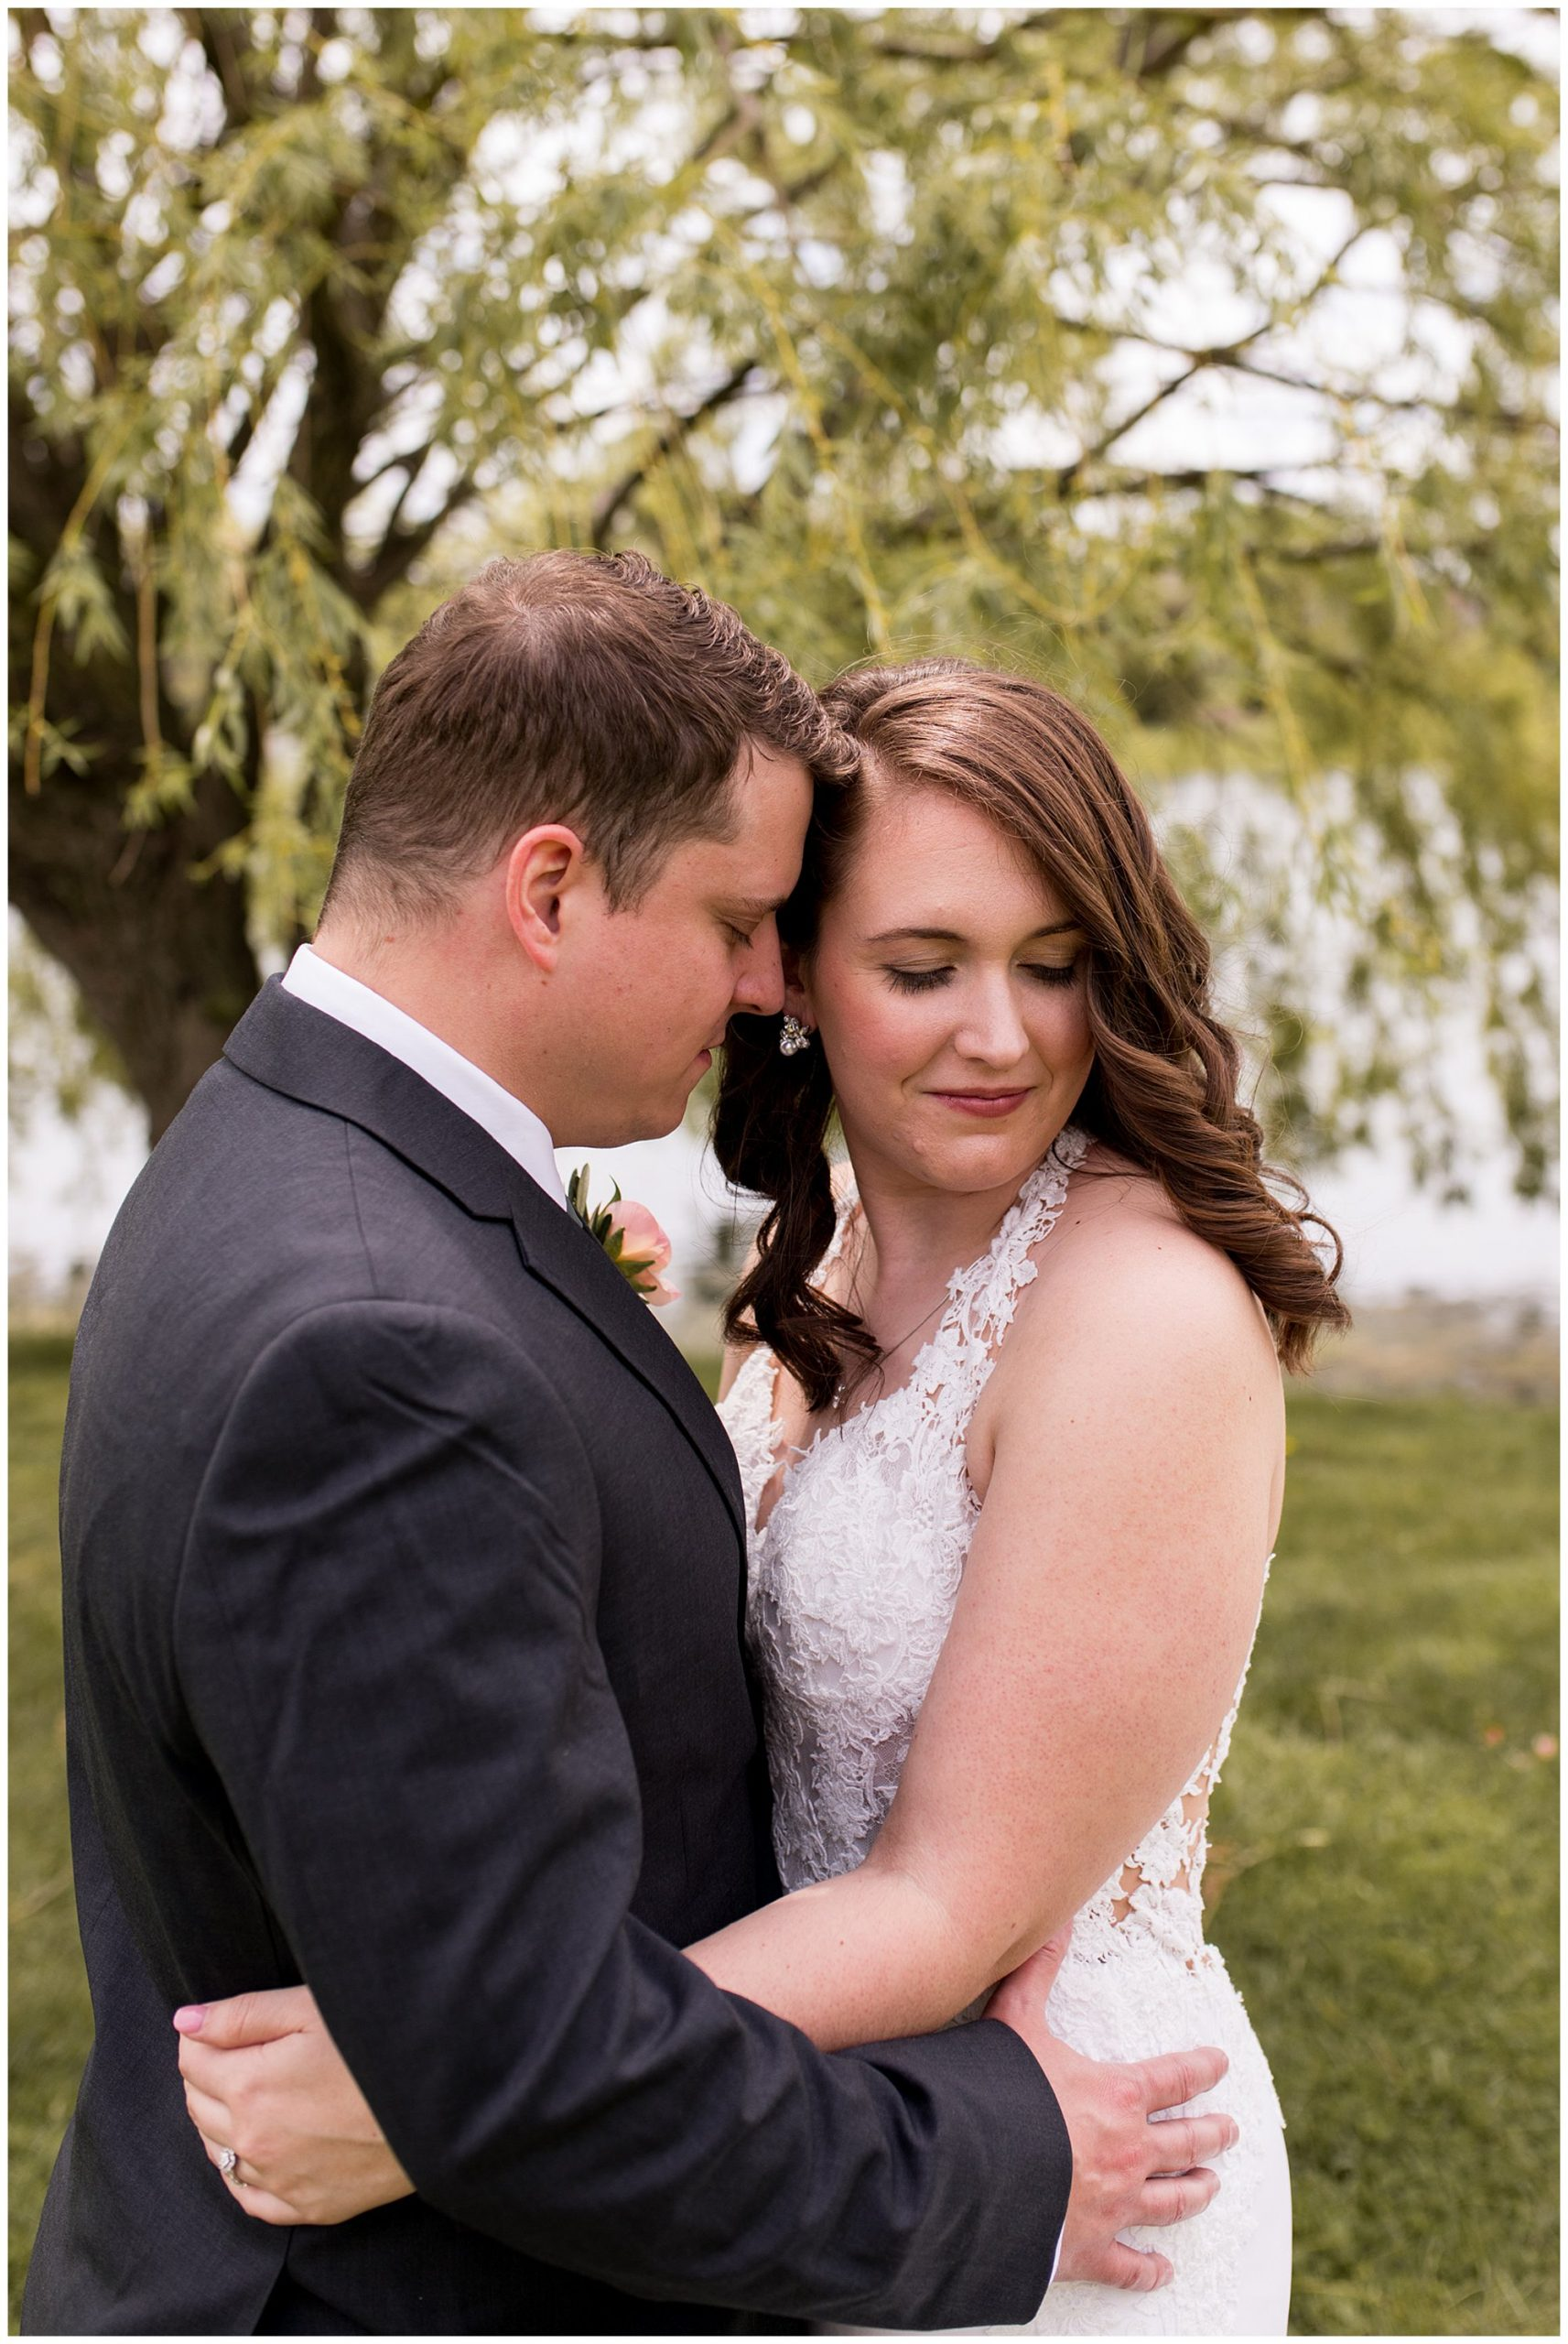 Coxhall Gardens bride and groom portraits in Carmel Indiana